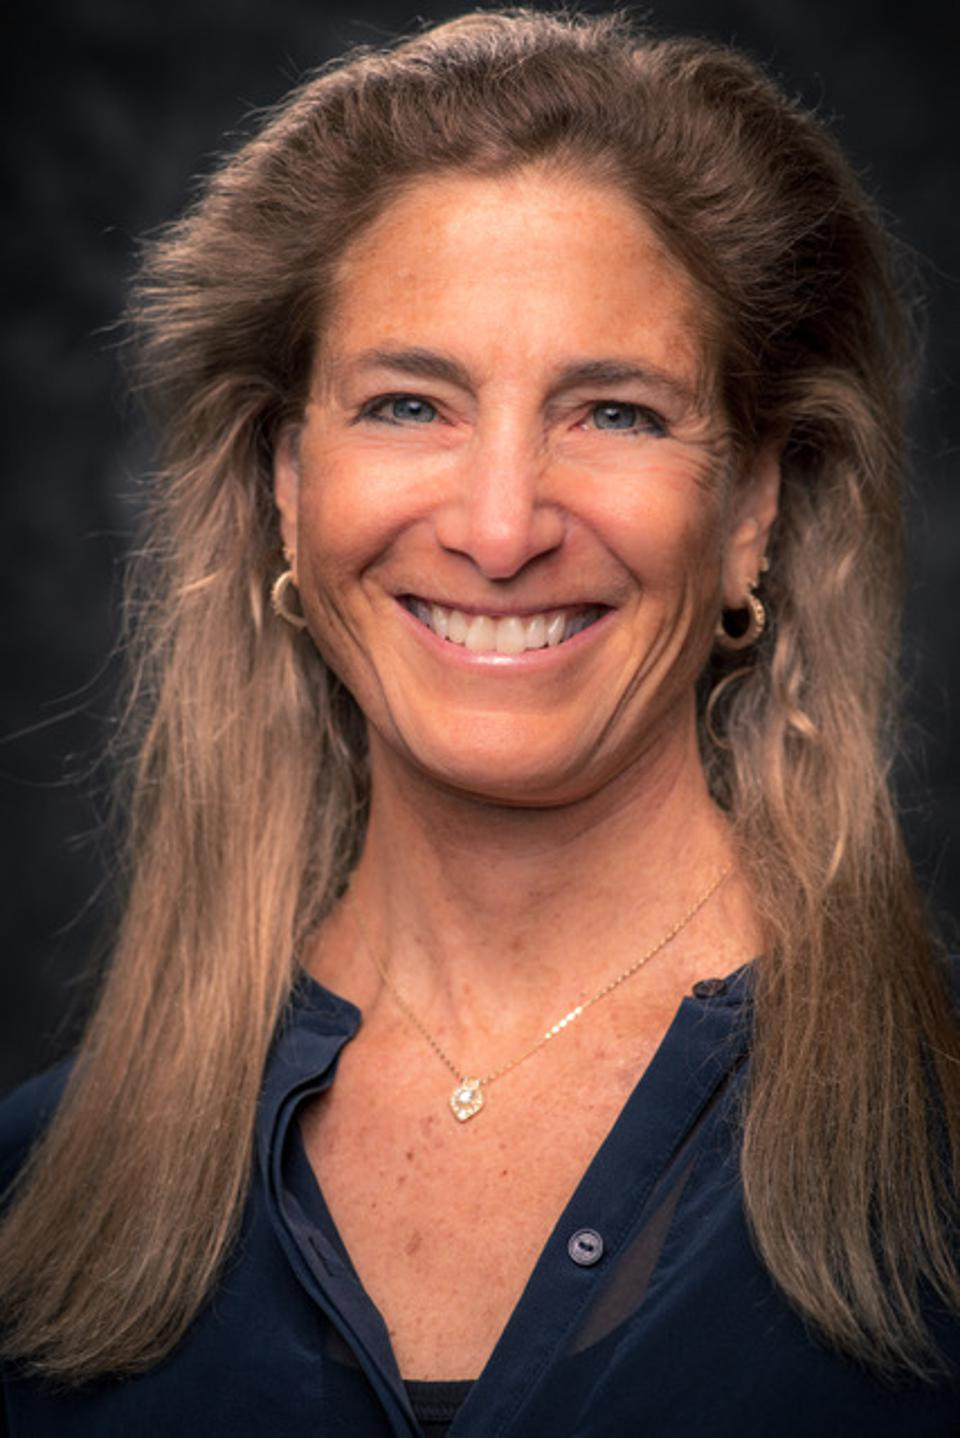 Tara Brach, Ph.D., world leader in the field of meditation and compassion